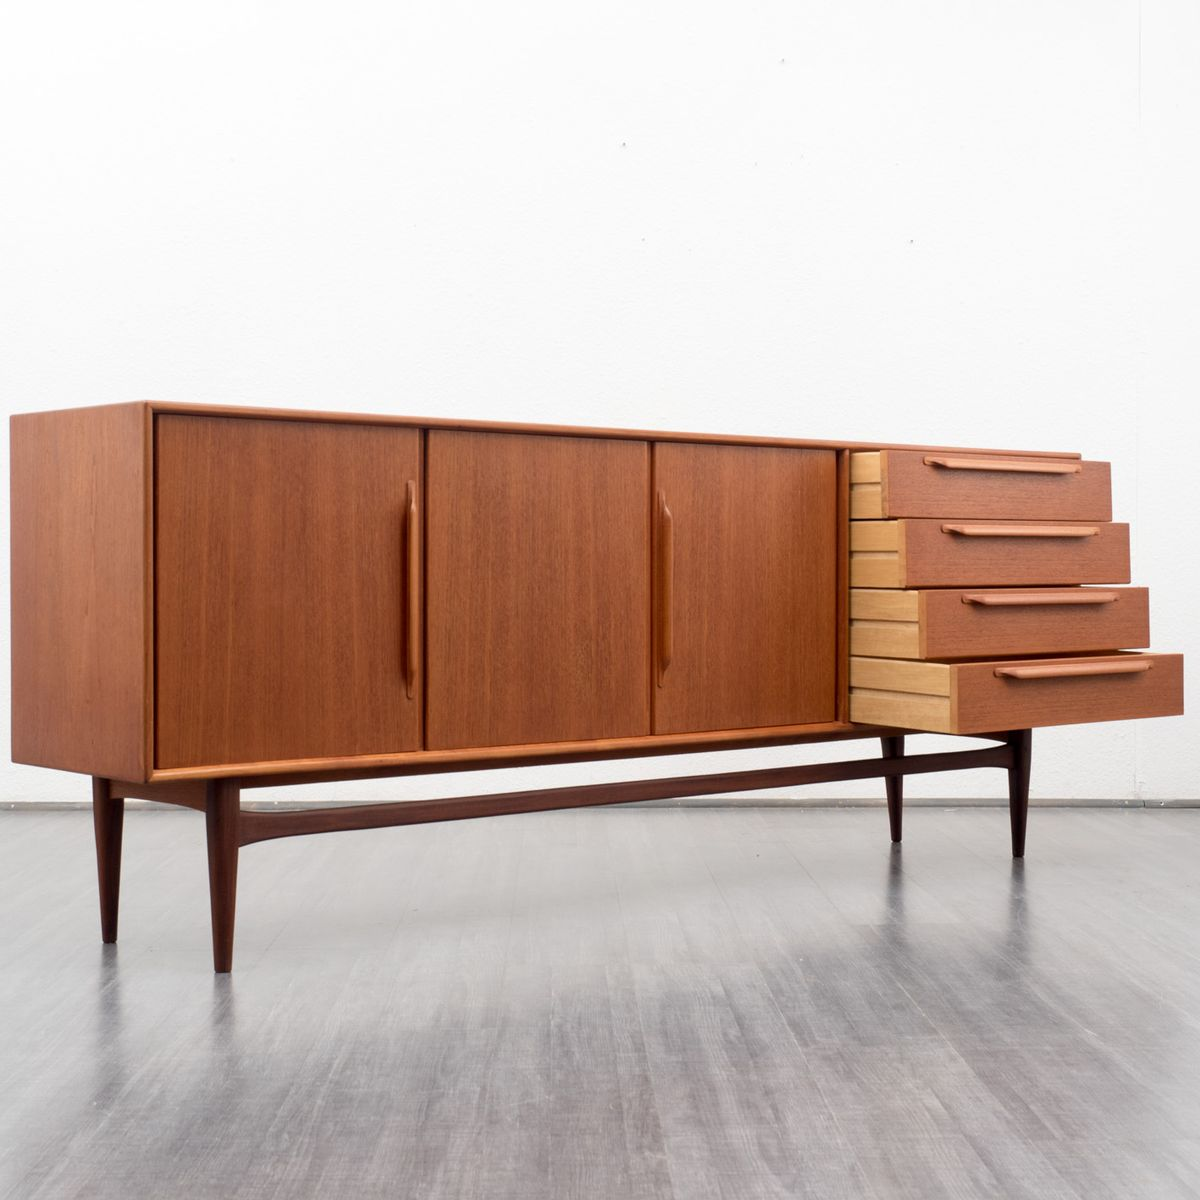 Scandinavian teak sideboard 1960s for sale at pamono for Sideboard scandi